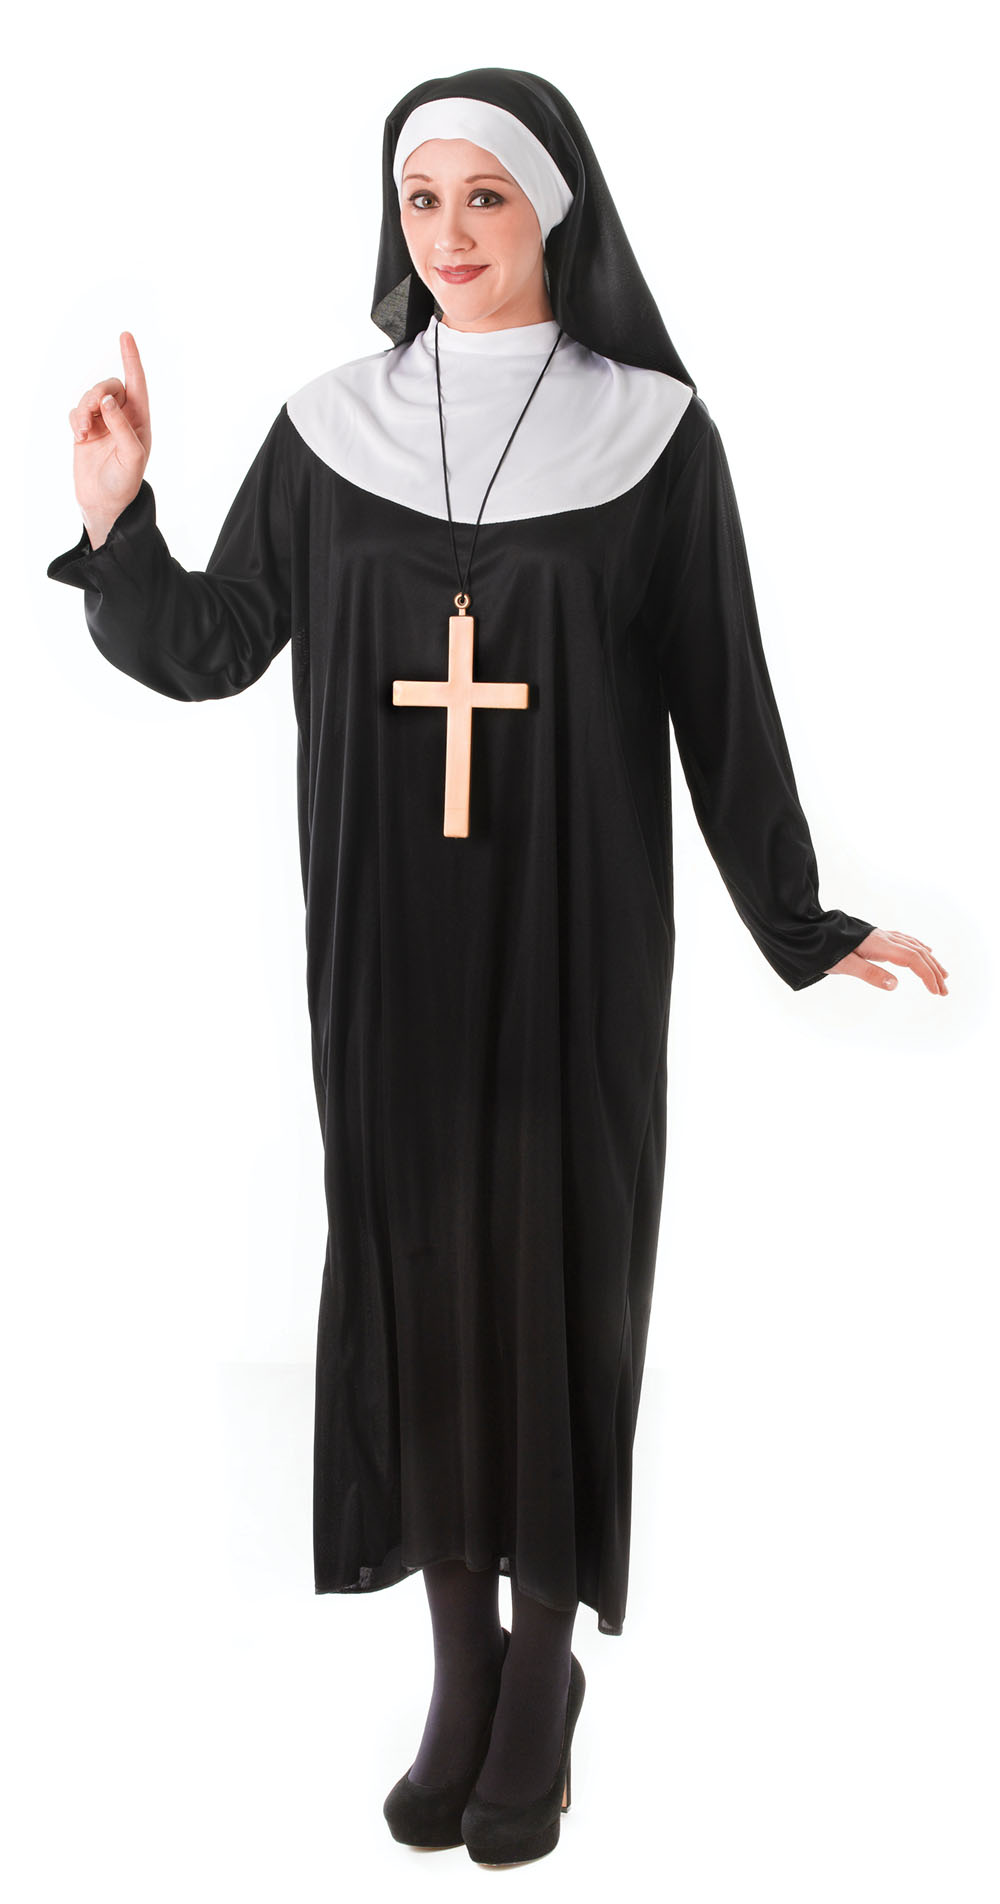 Ladies Black & White Nuns Fancy Dress Costume Hen Party WomensOutfit UK 10-14